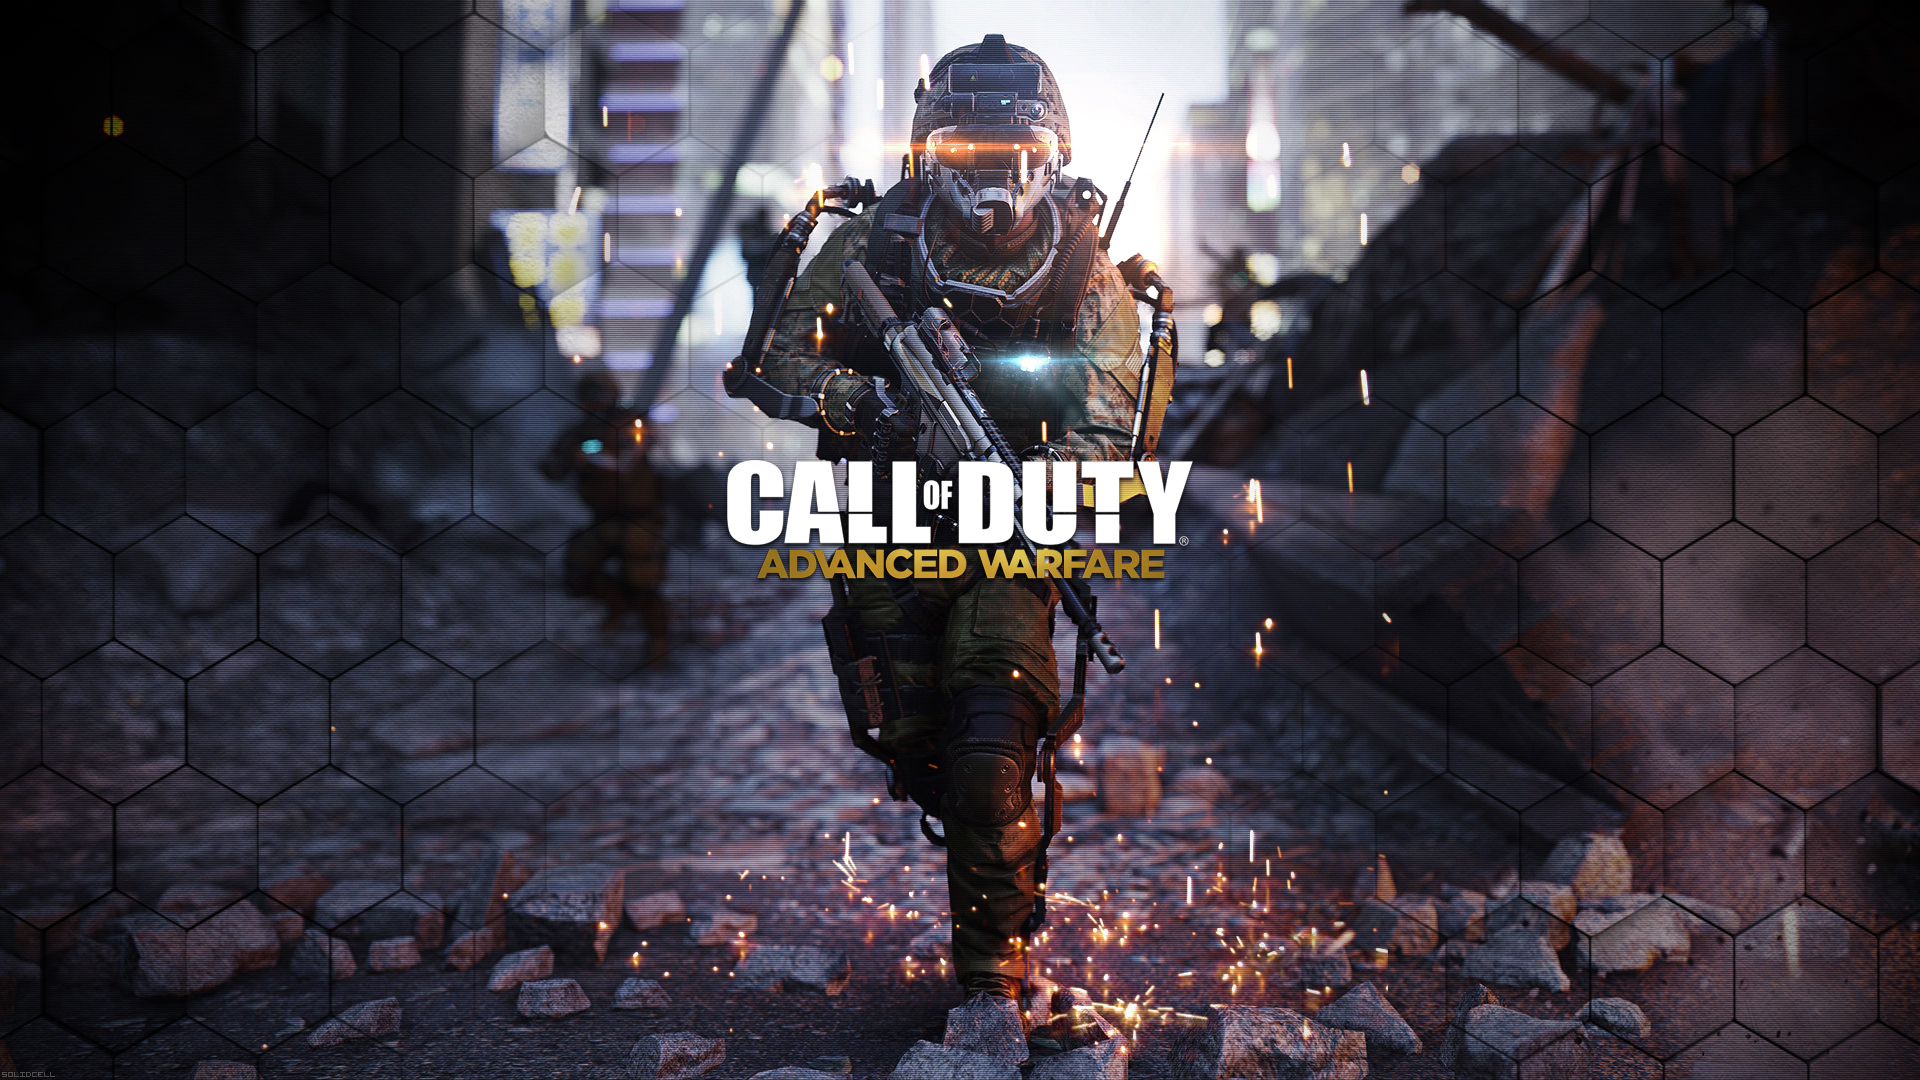 Call Of Duty Advanced Warfare Hd Wallpaper By Solidcell On